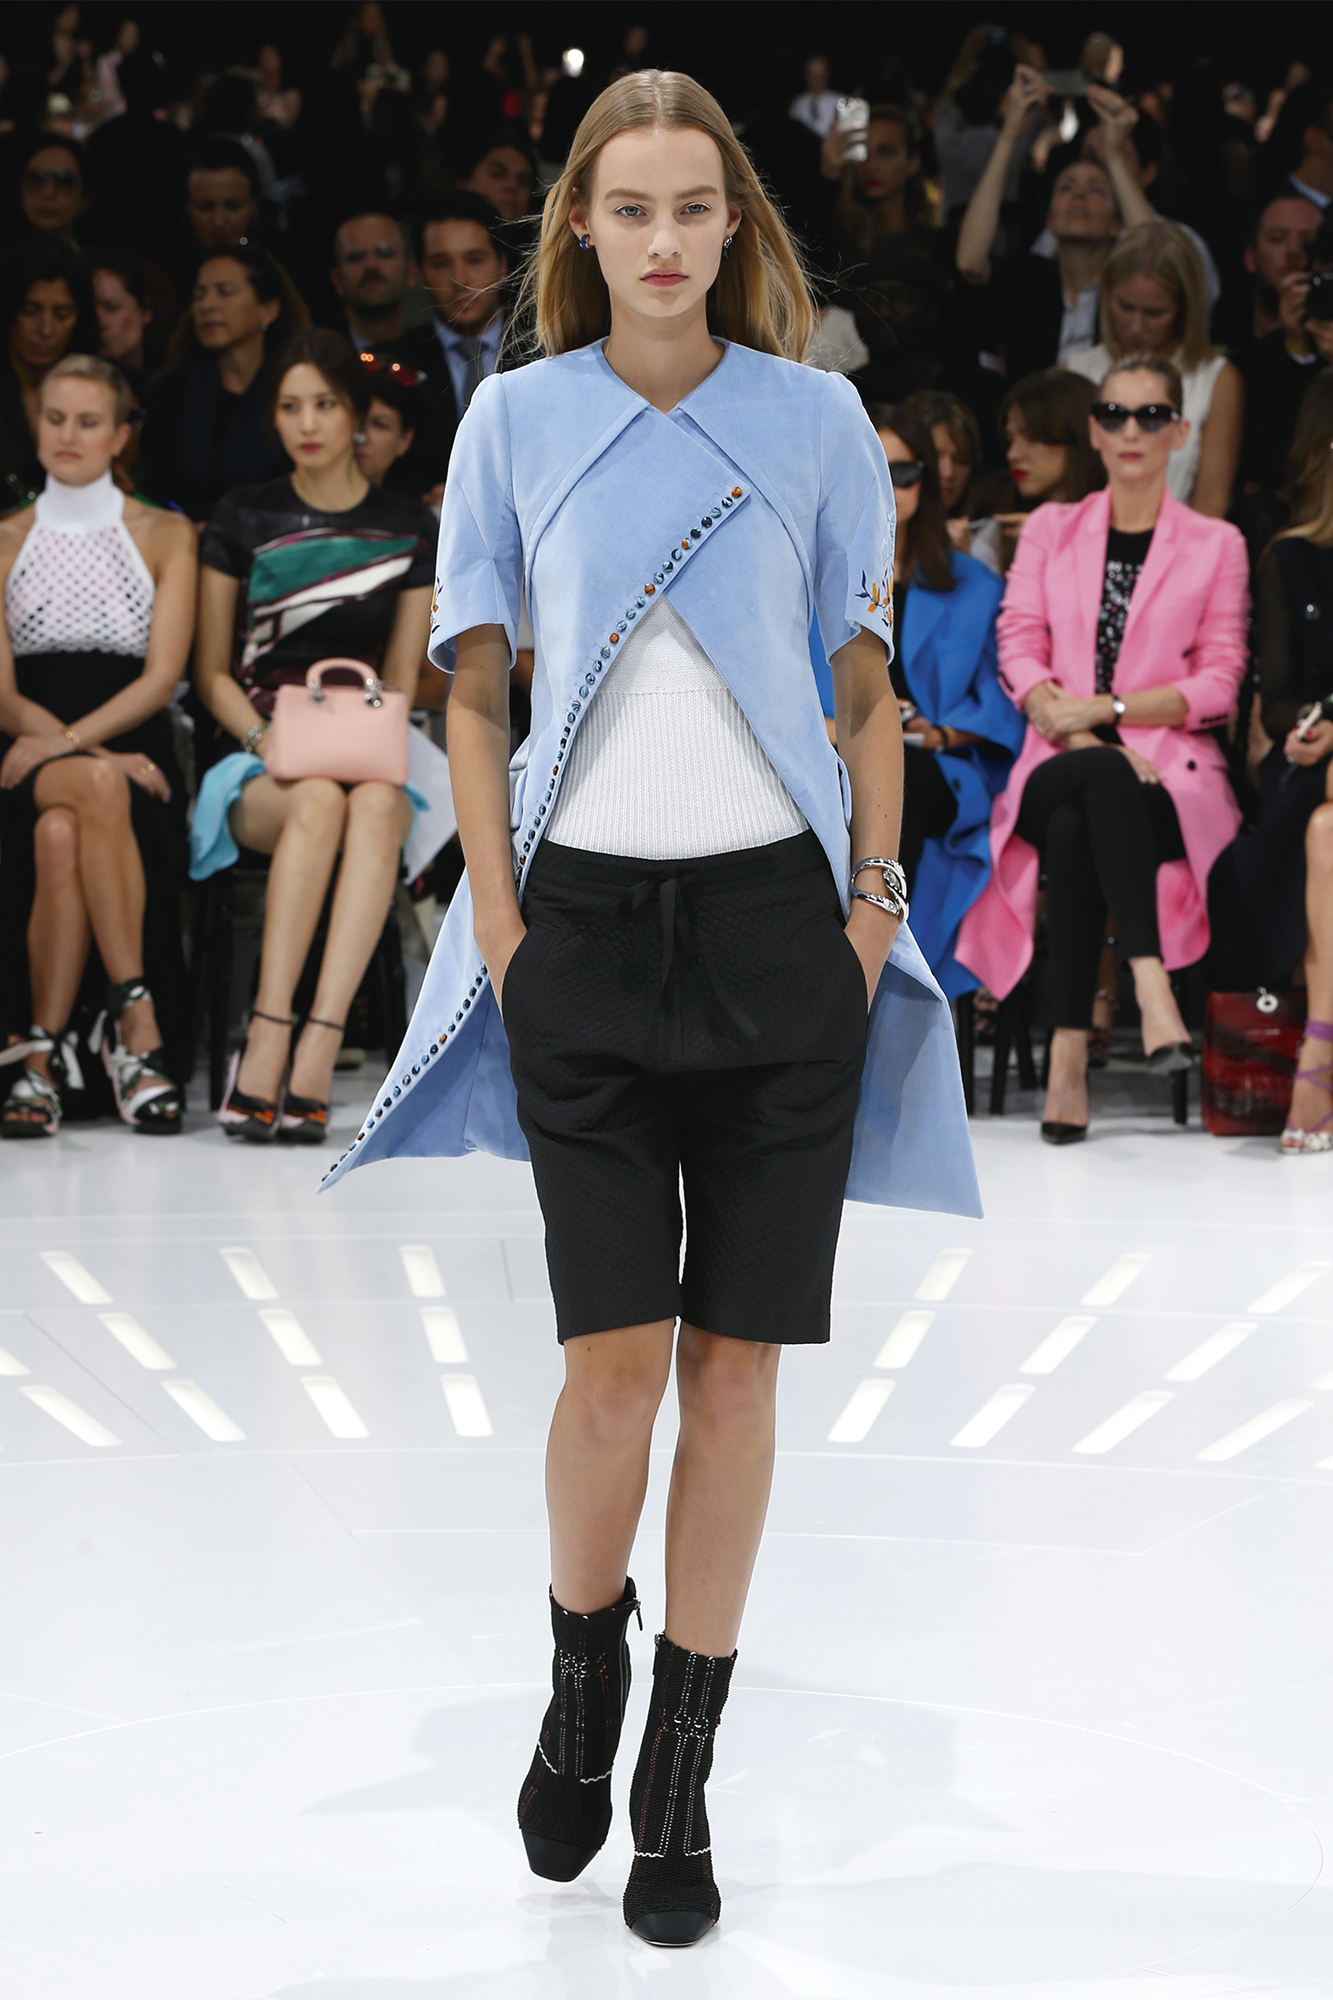 New Western Fashion Christian Dior Ready To Wear Dresses Spring Summer Collection 2015 (27)